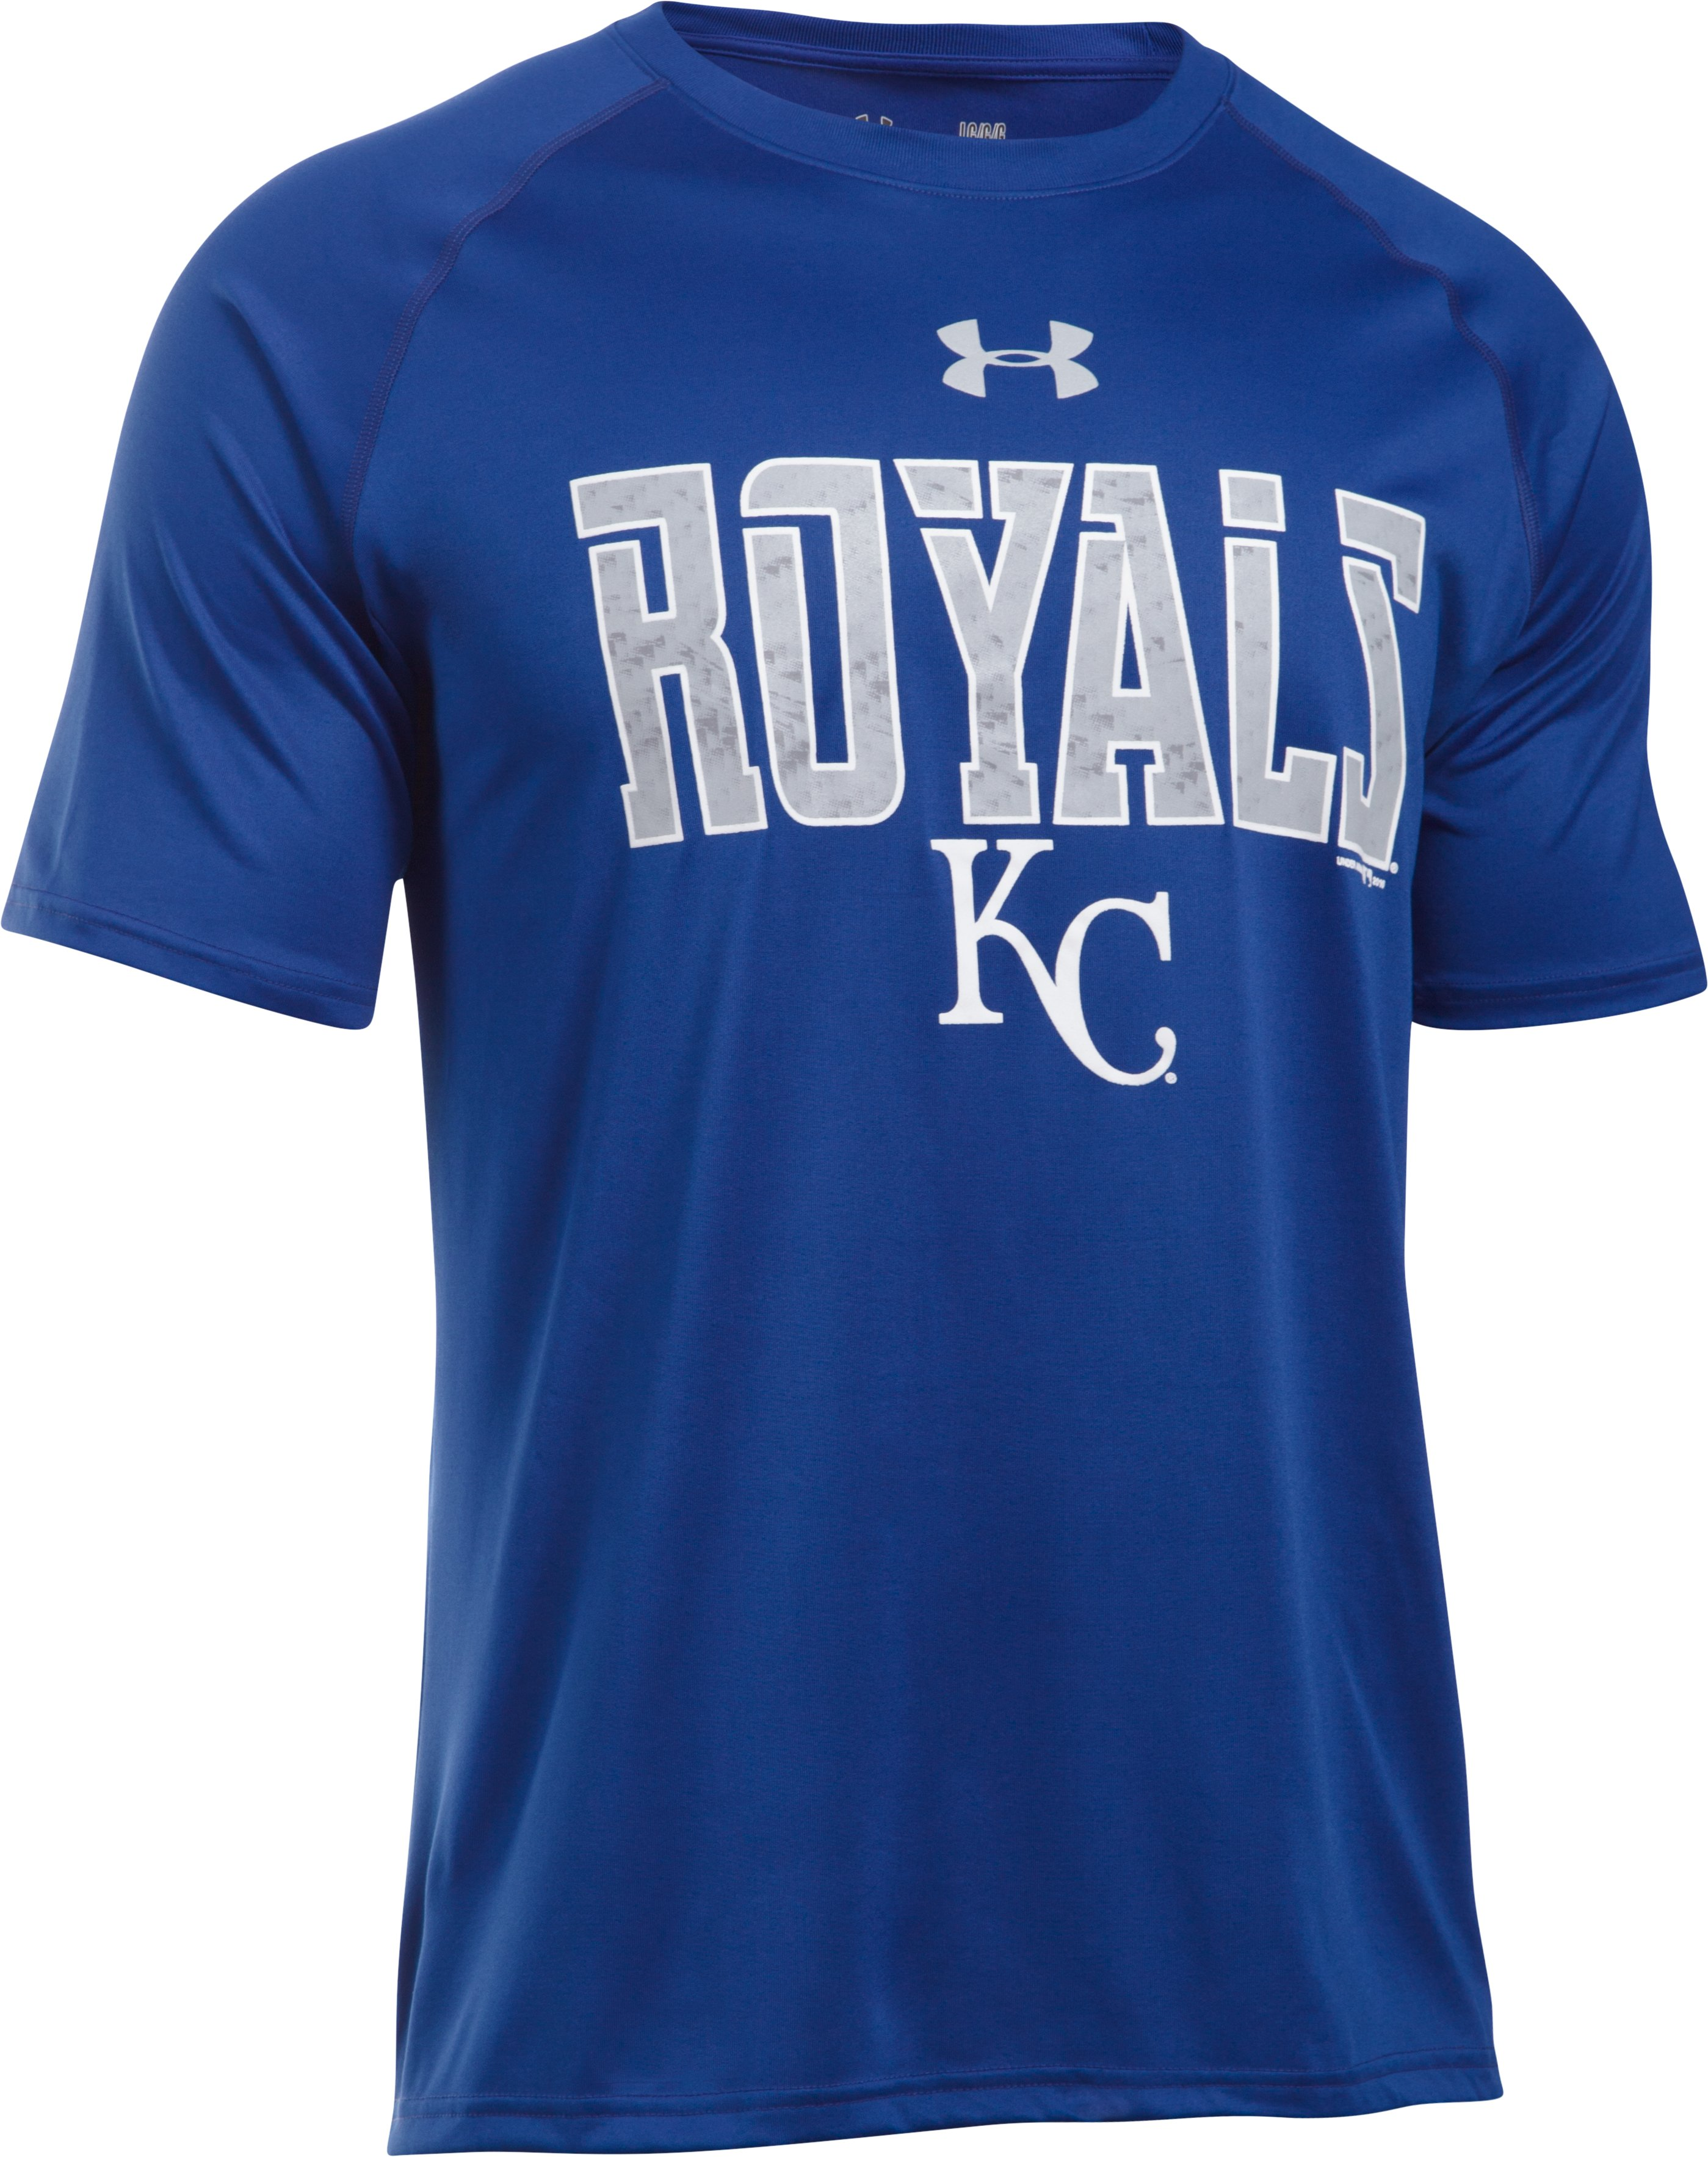 Men's Kansas City Royals Team Tech™ T-Shirt, Royal,